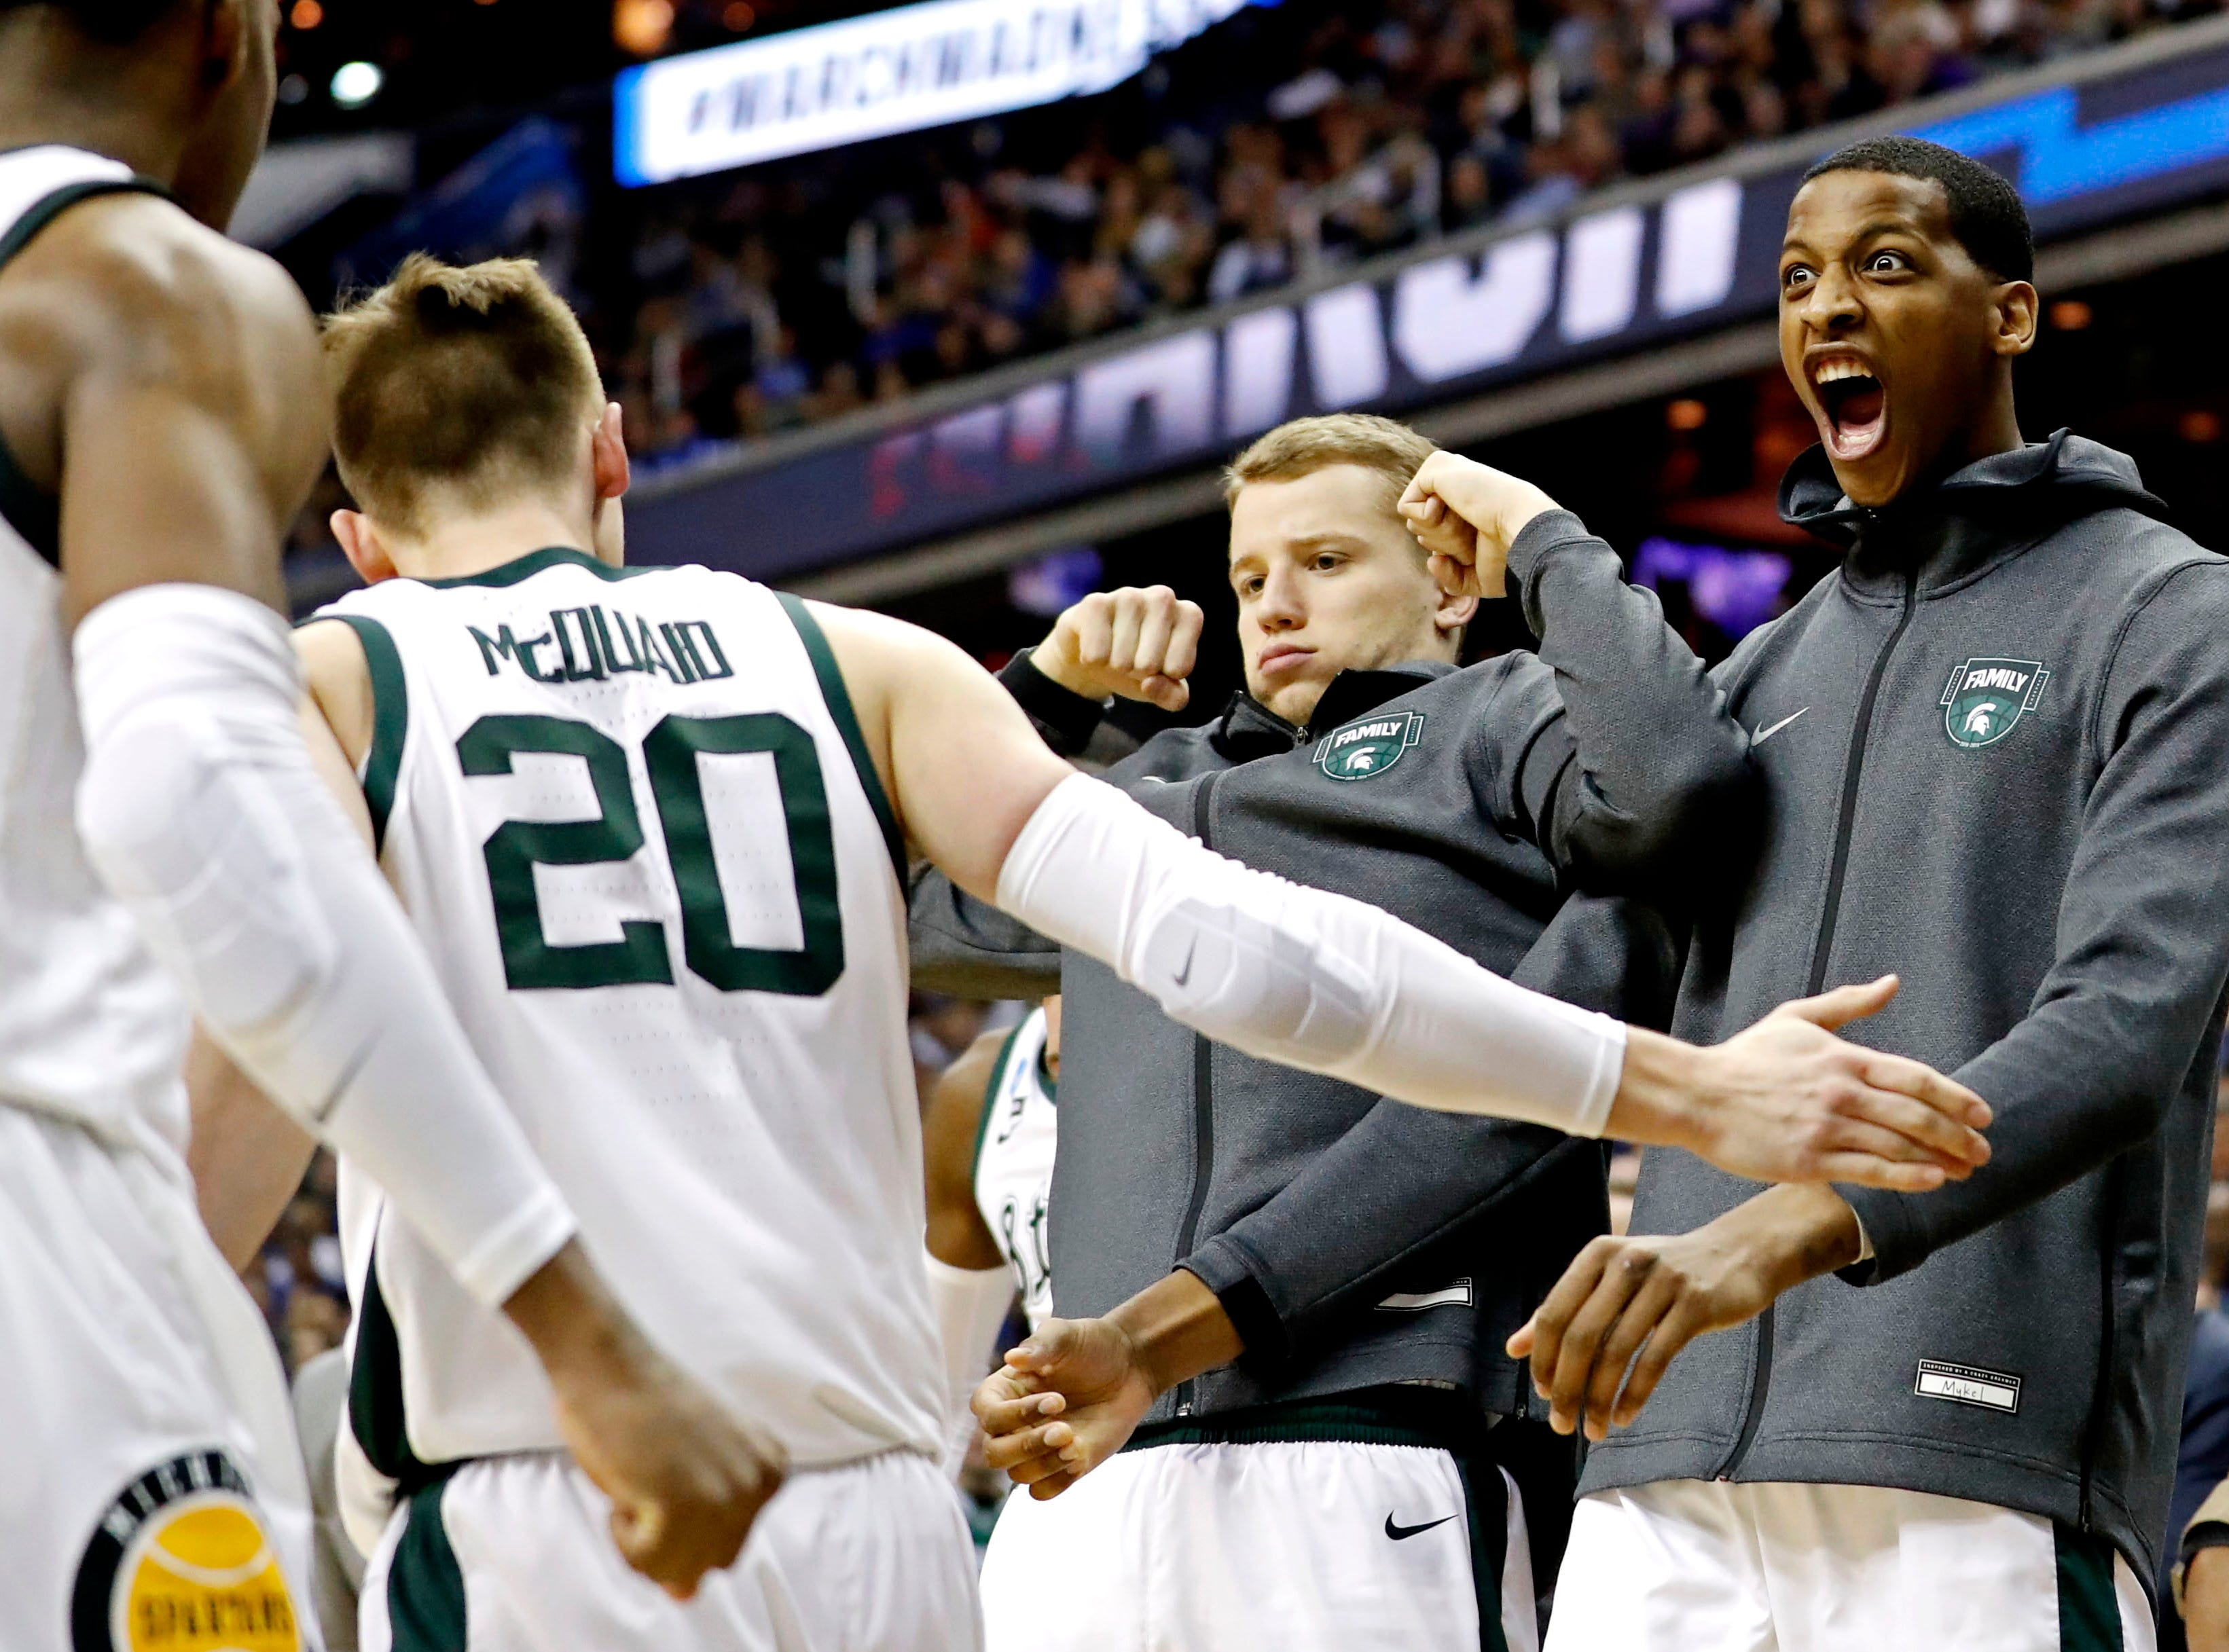 Sweet 16: The Michigan State Spartans bench reacts after guard Matt McQuaid's bucket in the second half against the LSU Tigers.